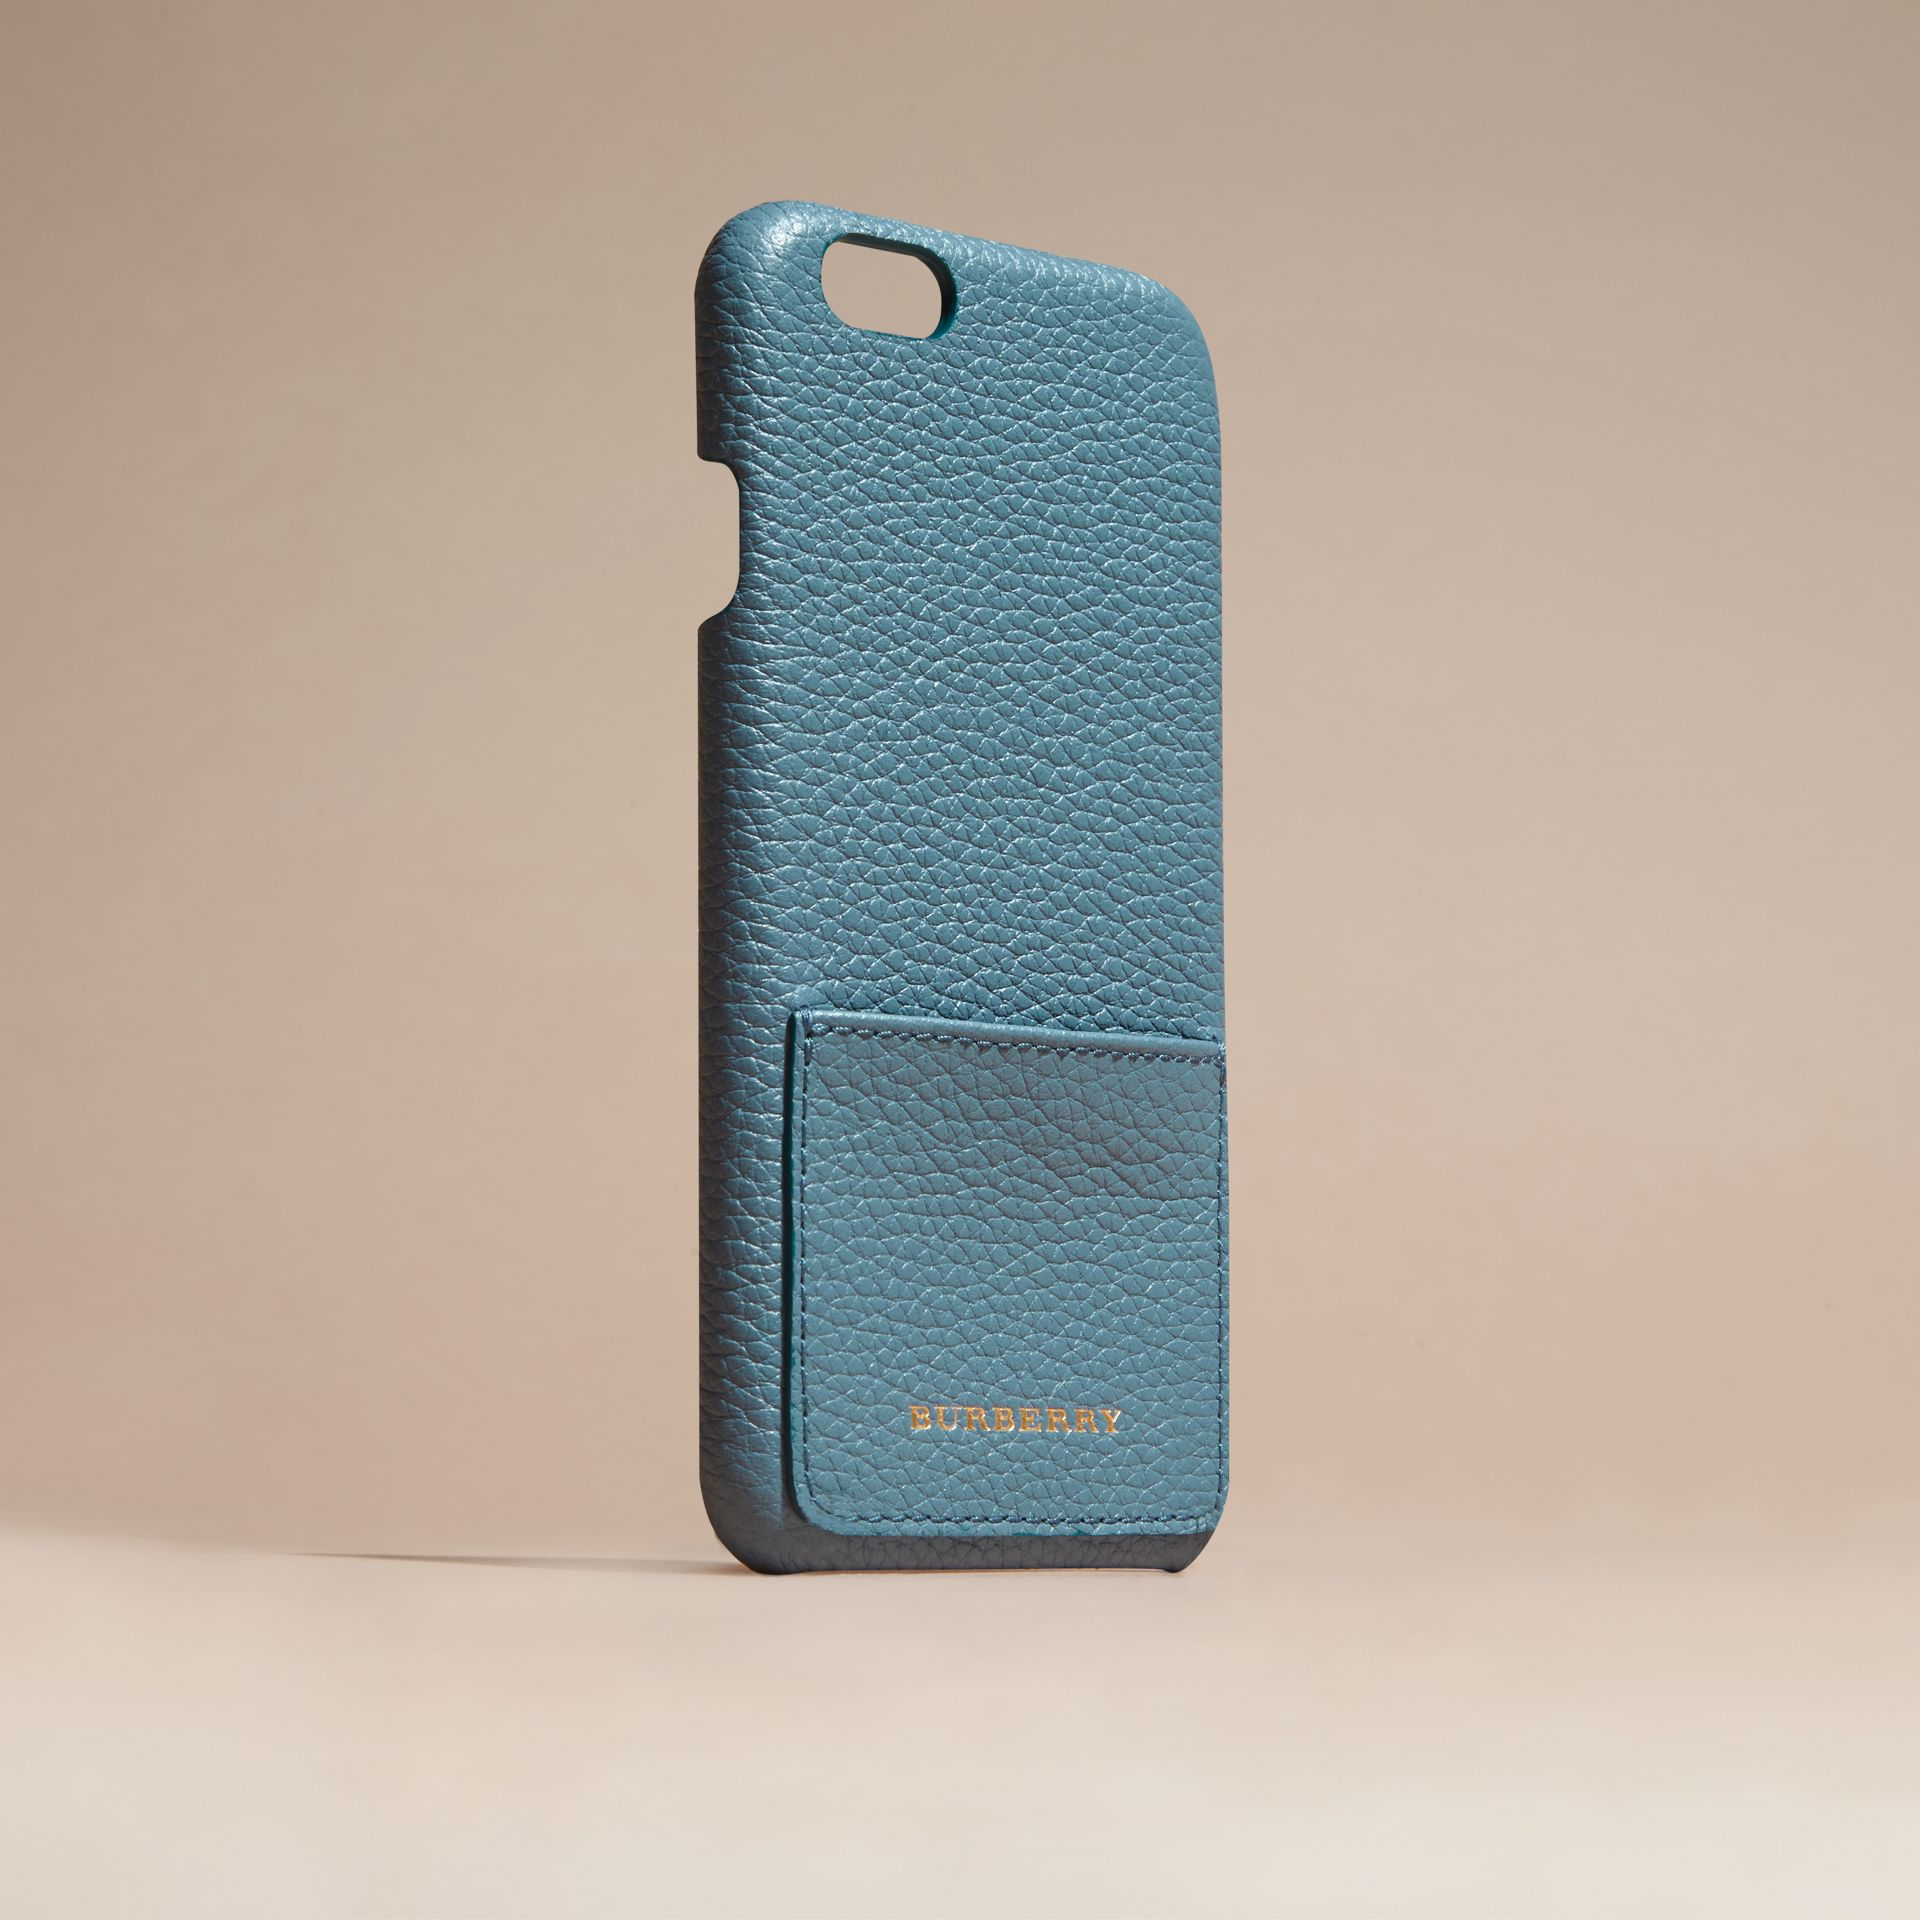 Grainy Leather iPhone 6 Case in Dusty Teal | Burberry Australia - gallery image 3